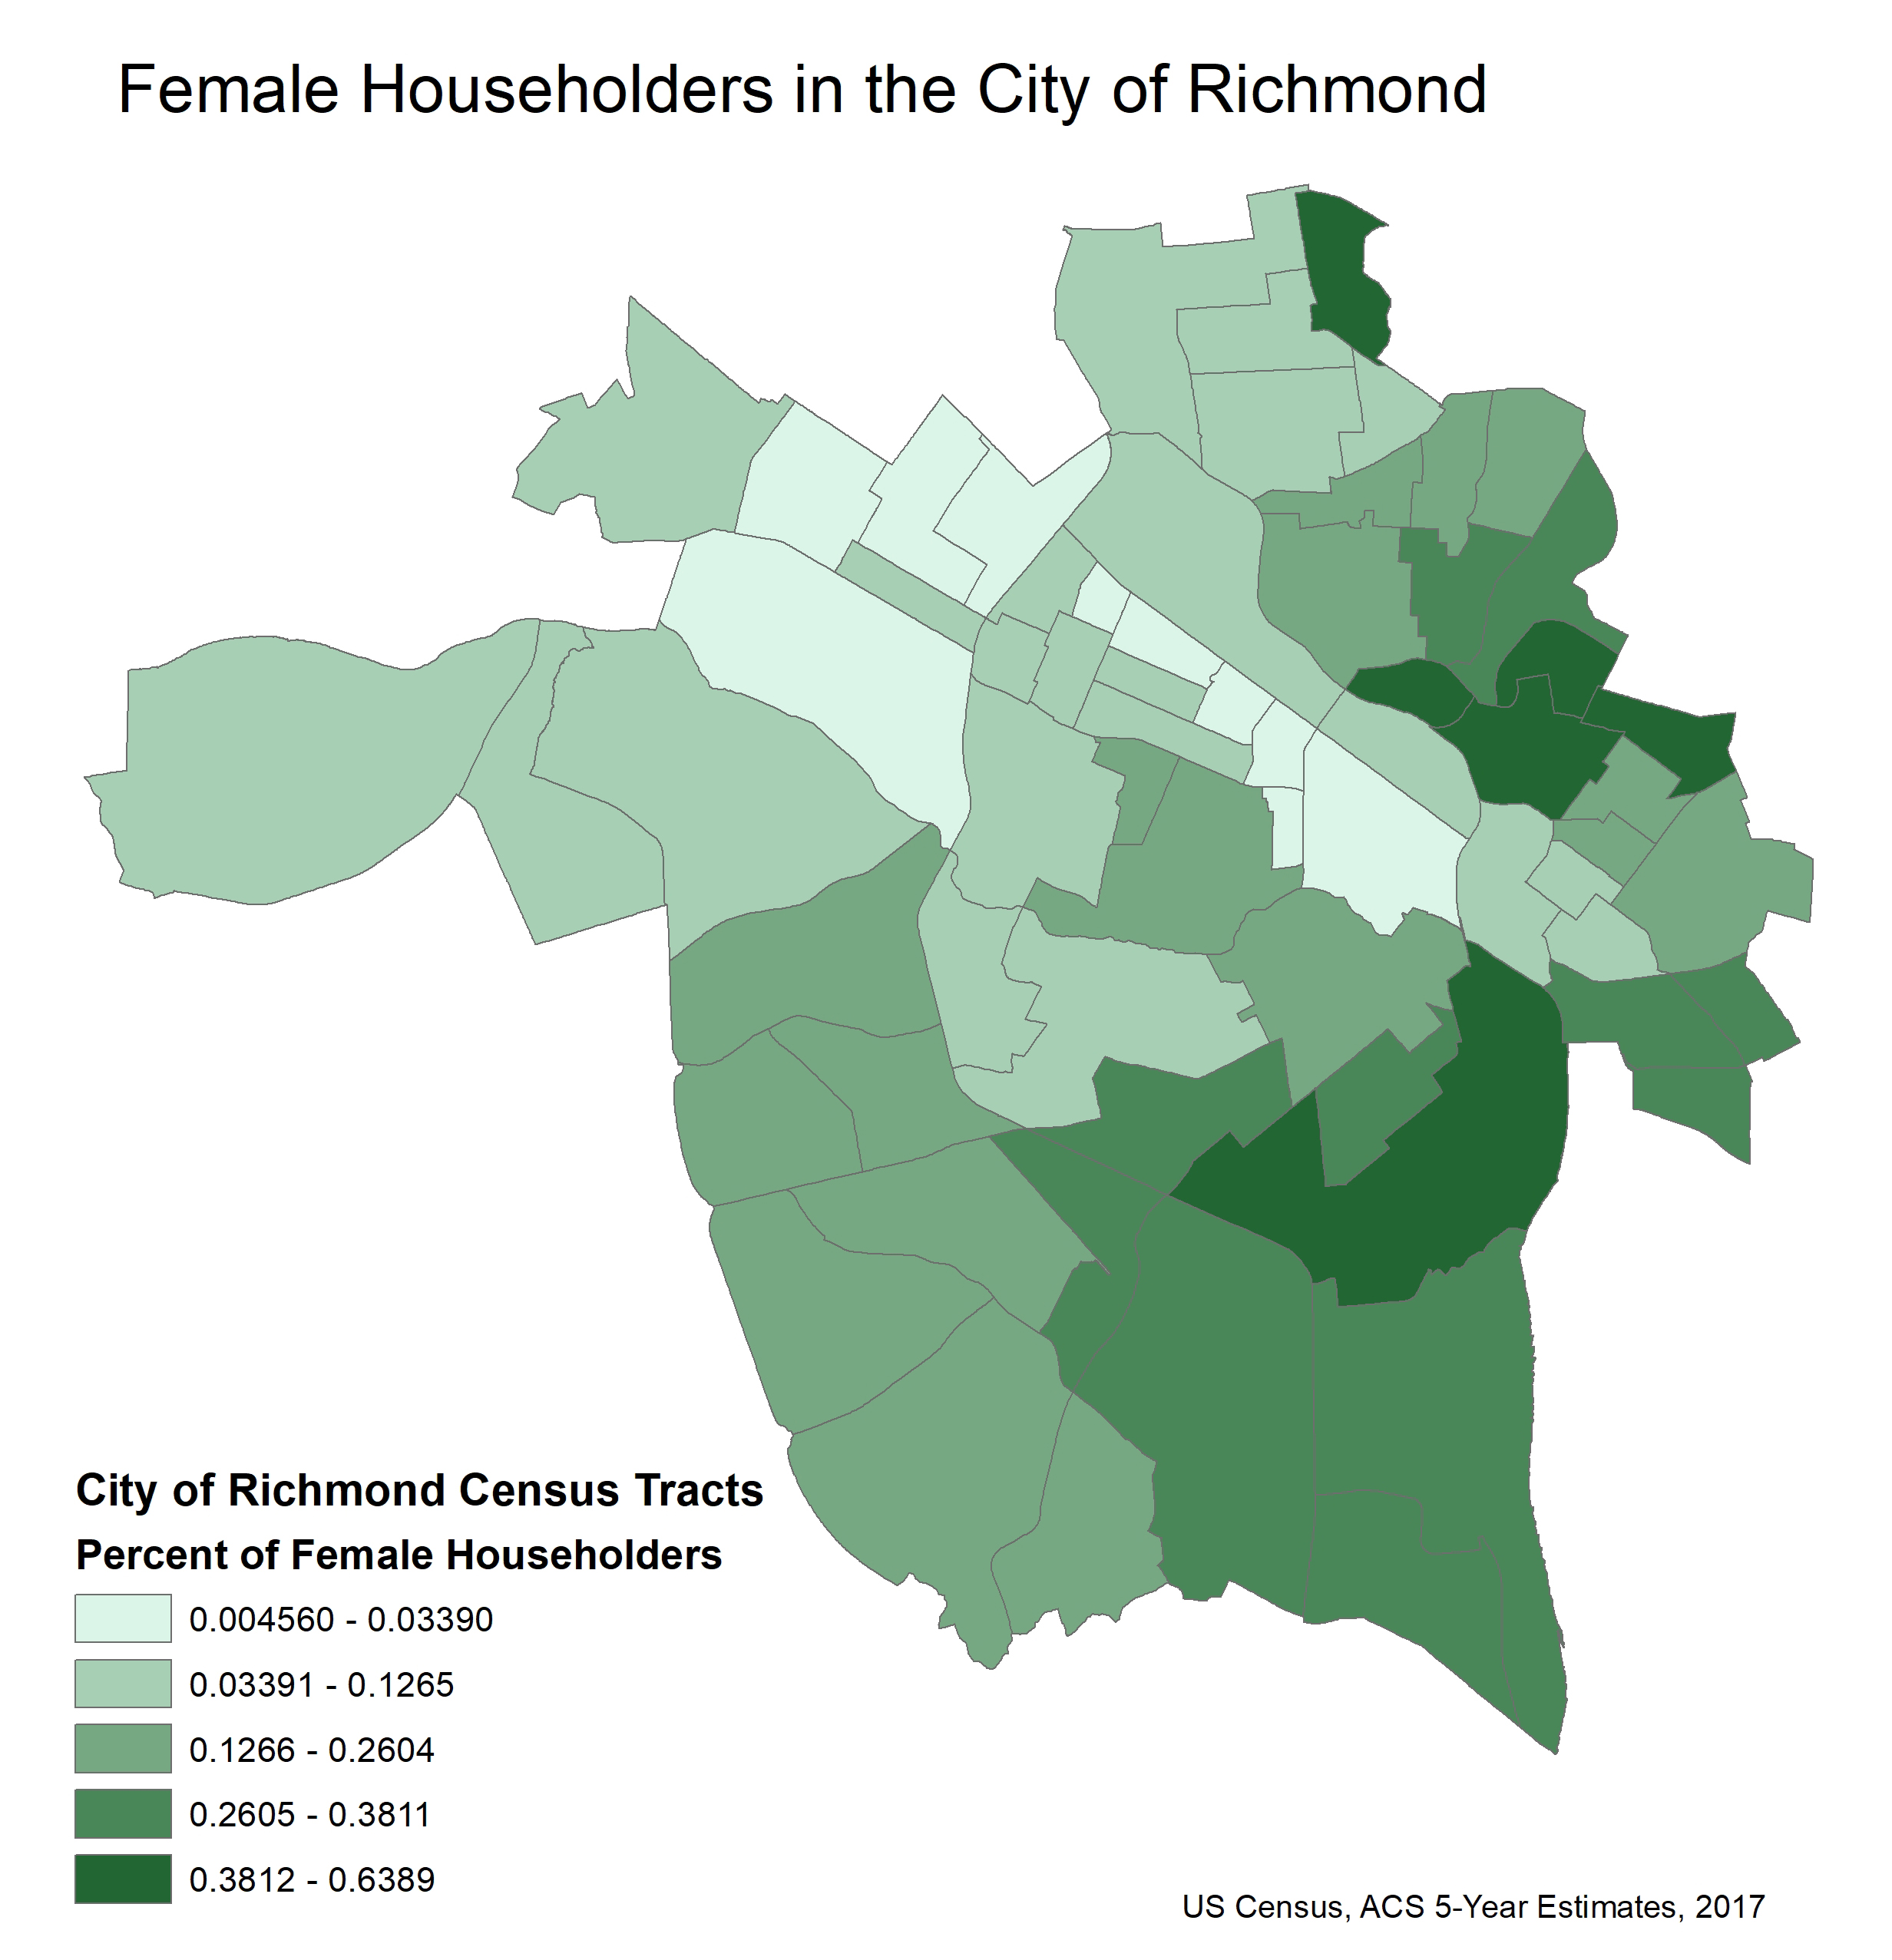 Map of Richmond displaying the percentage of female householders by census tract. The higher the percentage, the darker the shade of green, with darkest areas concentrated in the eastern side of Richmond.